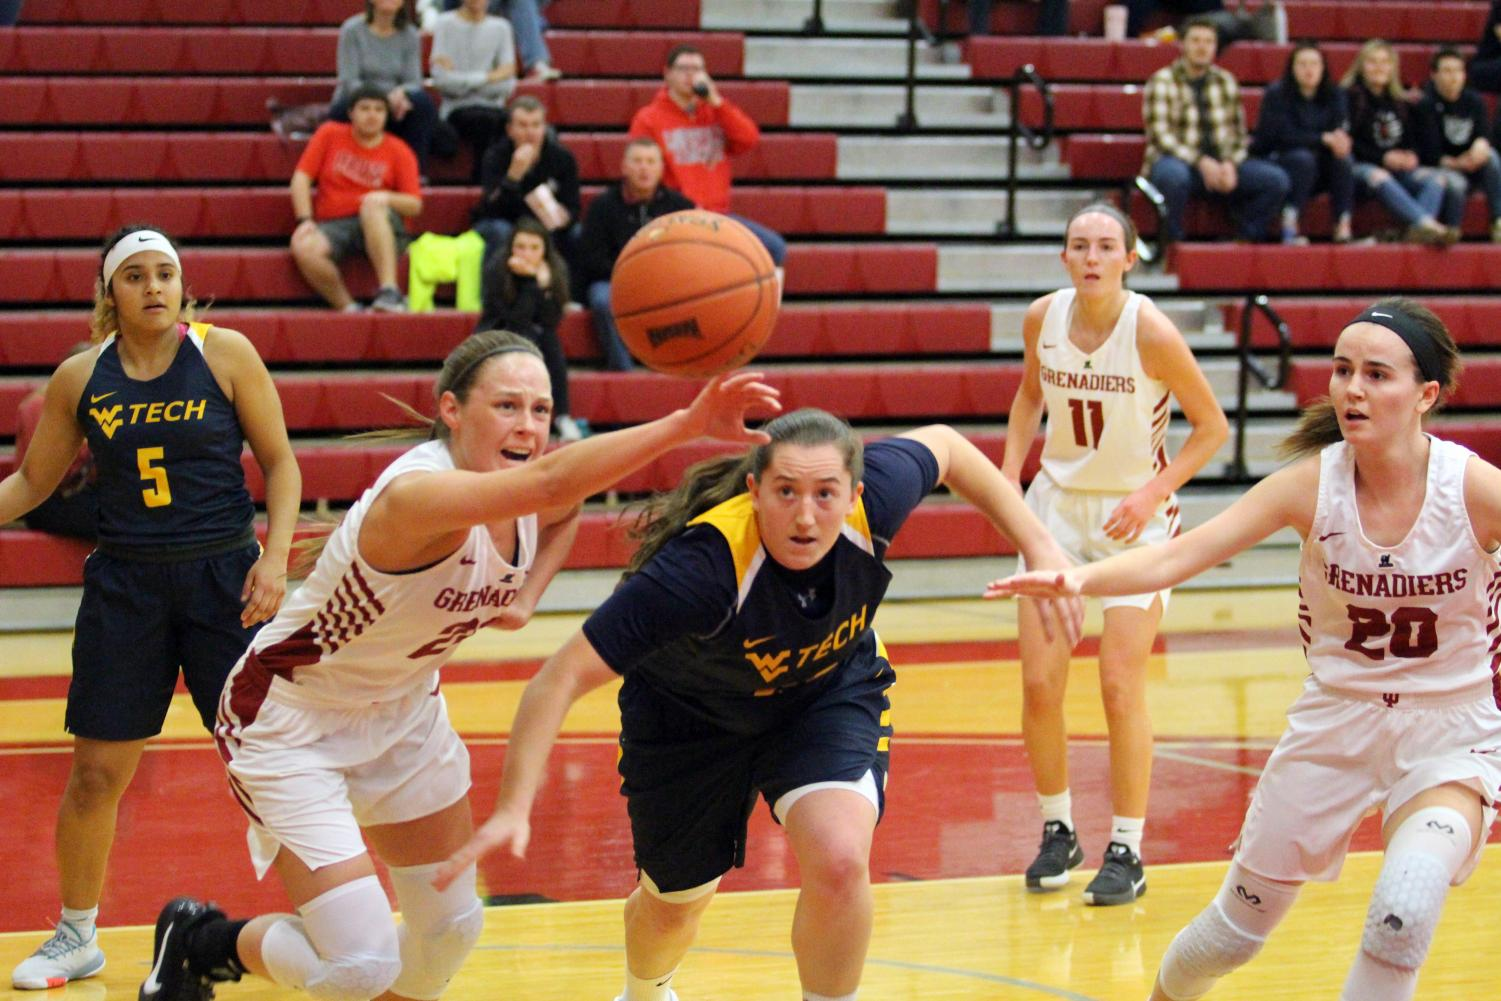 Ariana Sandefur (left) and WVU Tech's Logan Dudley rush after a loose ball in the third quarter.